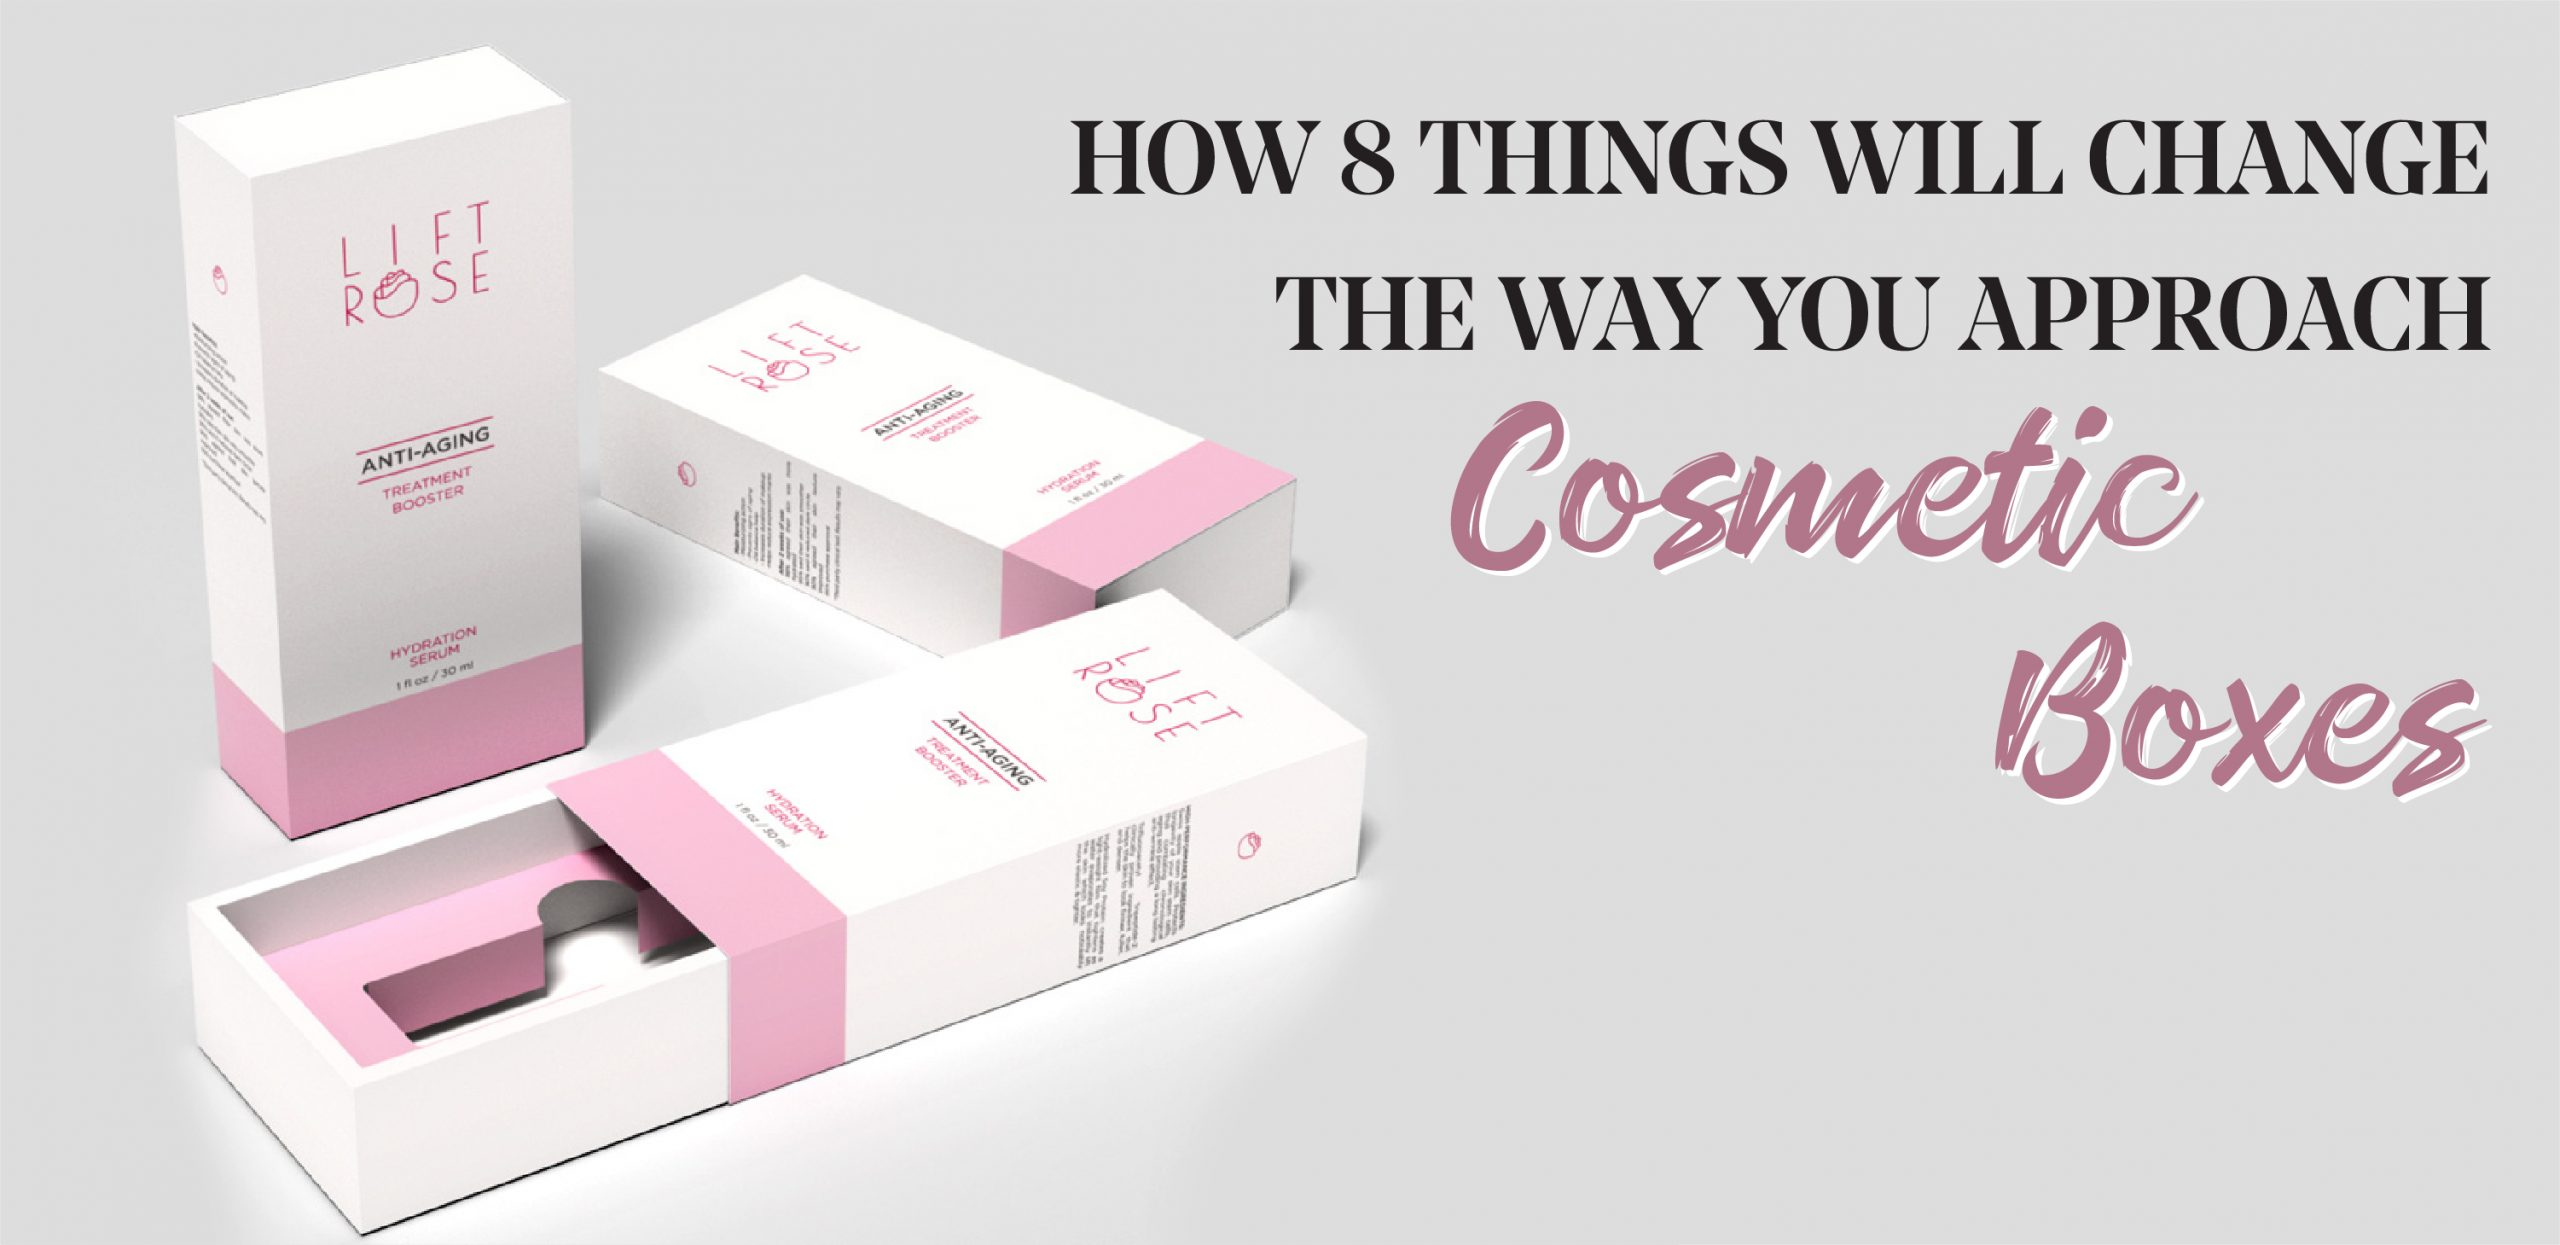 How 8 Things will Change the Way You Approach Cosmetic Boxes